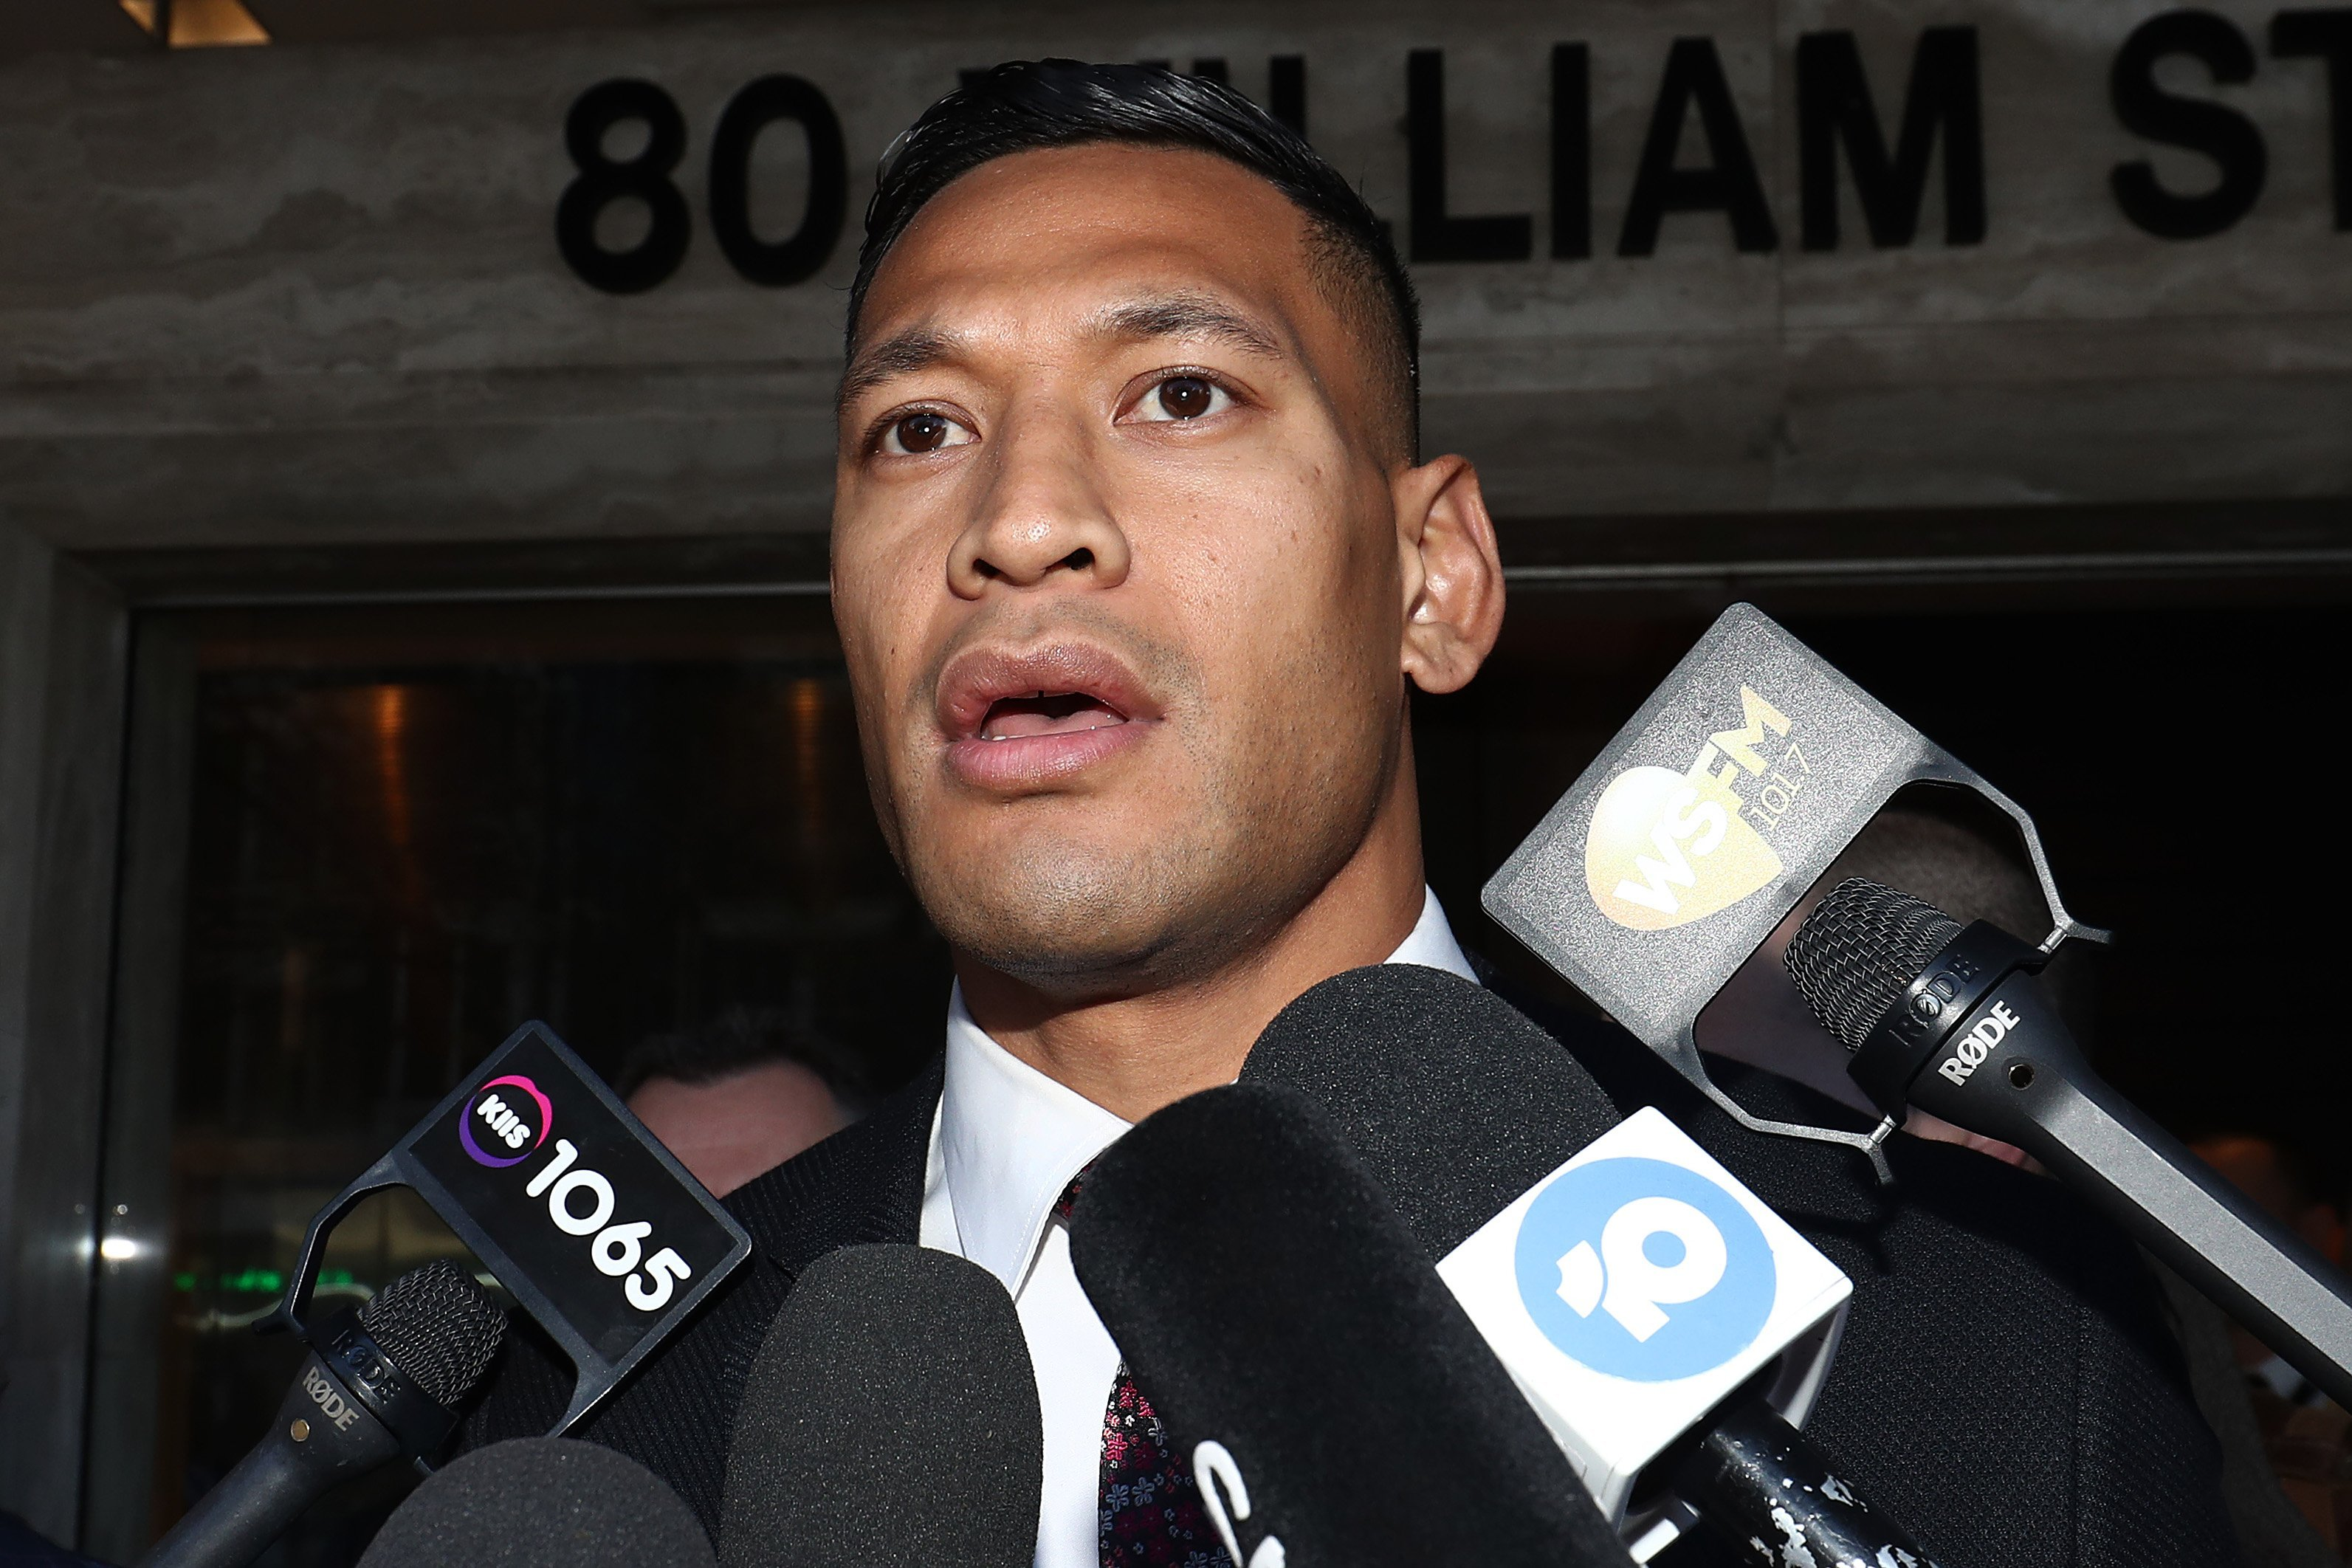 Israel Folau links Australia's bushfires and drought to the country's same-sex and abortion laws